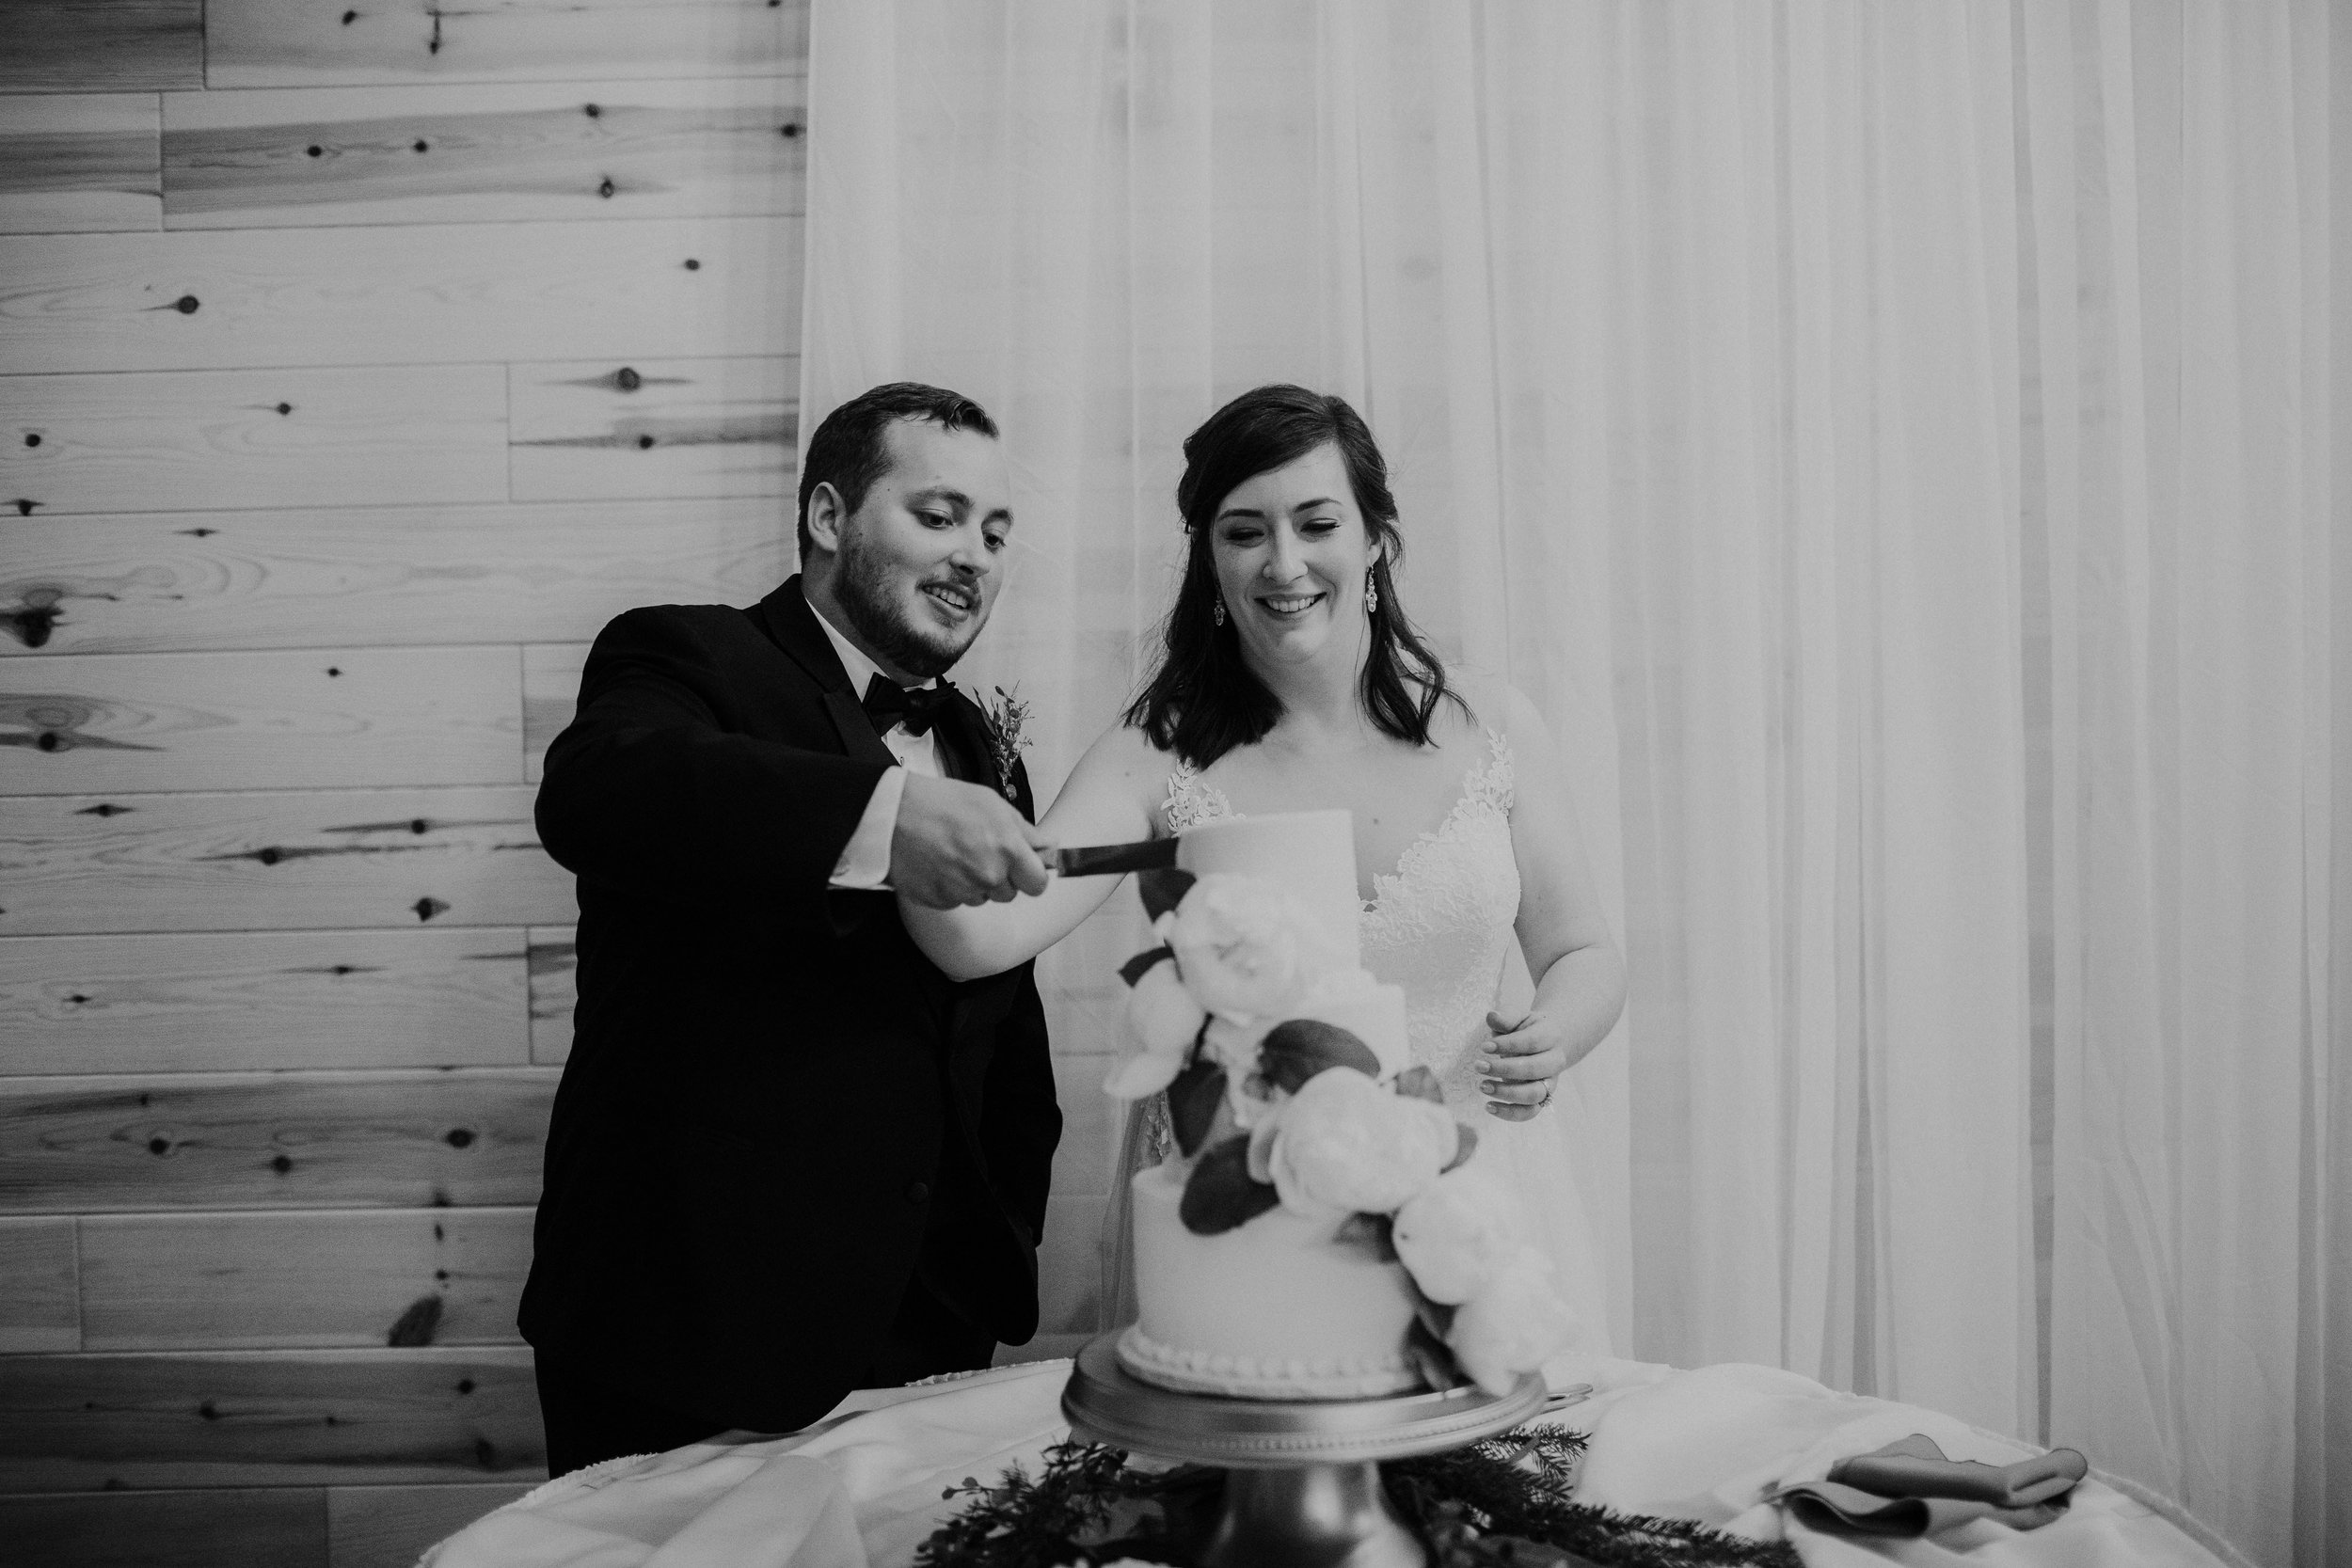 columbus ohio wedding photographer grace e jones photography193.jpg